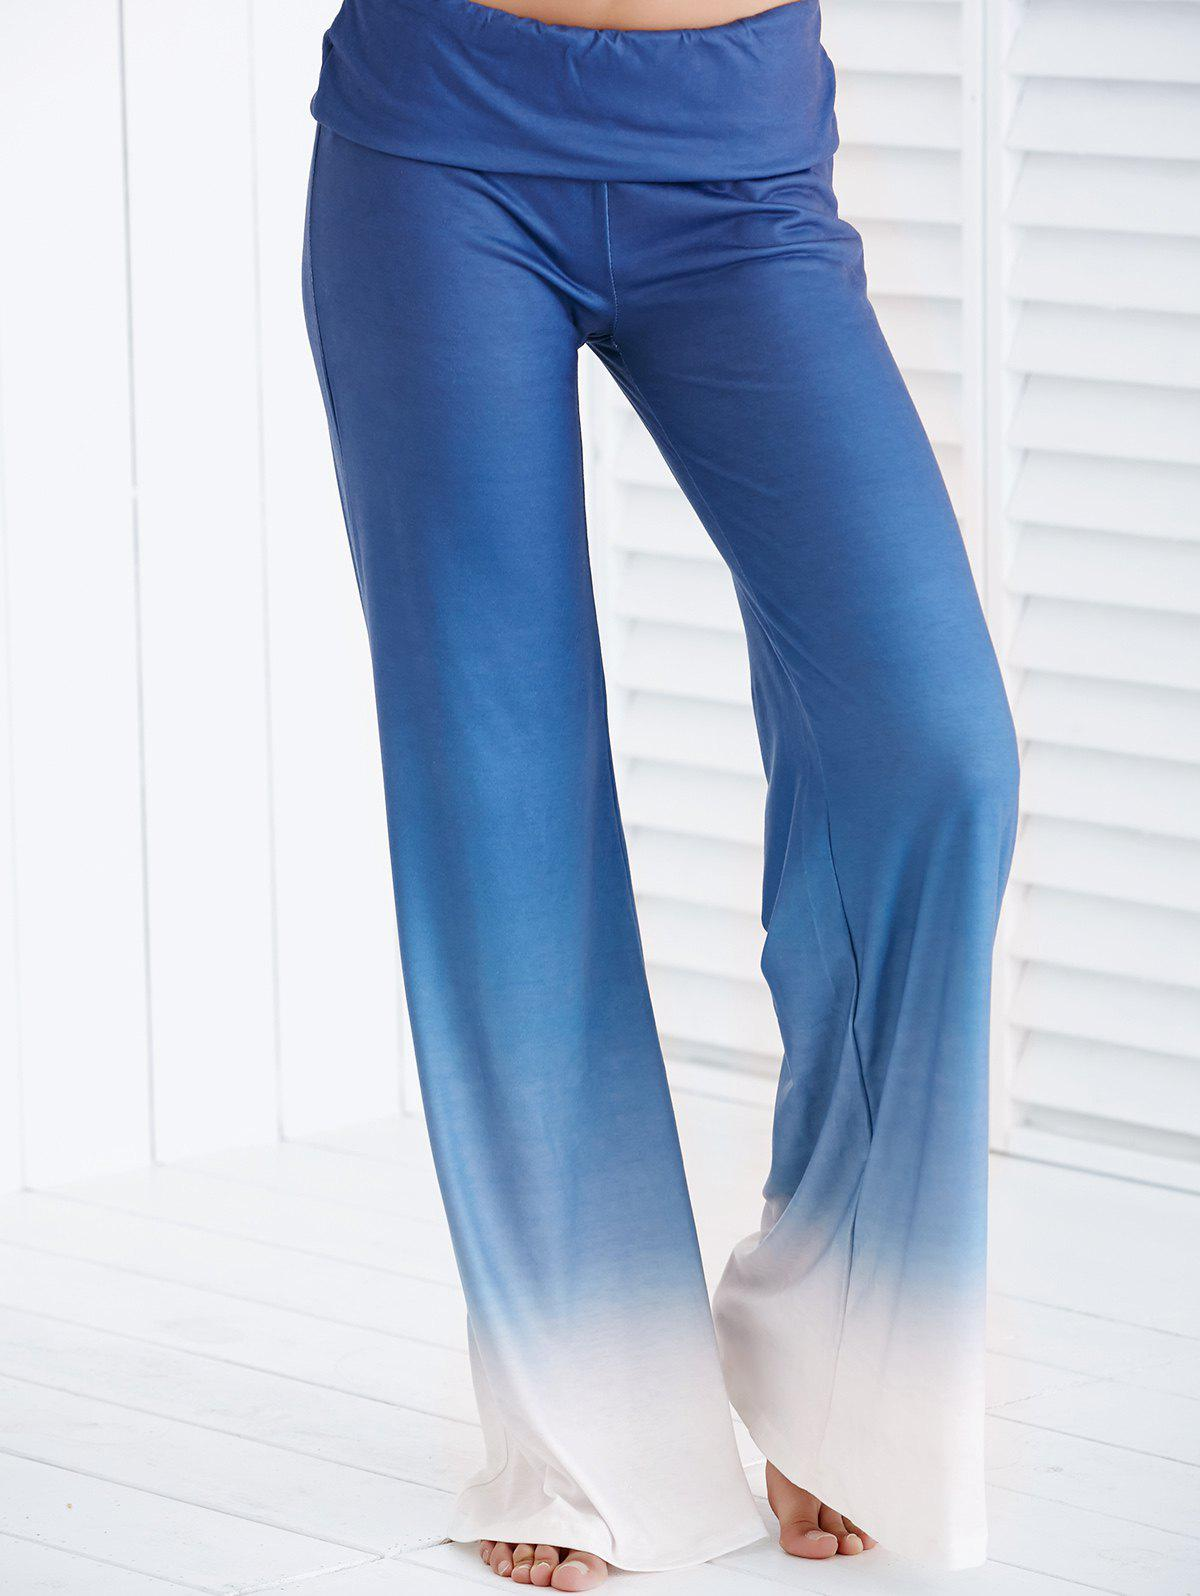 Chic Elastic Waist Loose-Fitting Ombre Women's Pants - ICE BLUE S